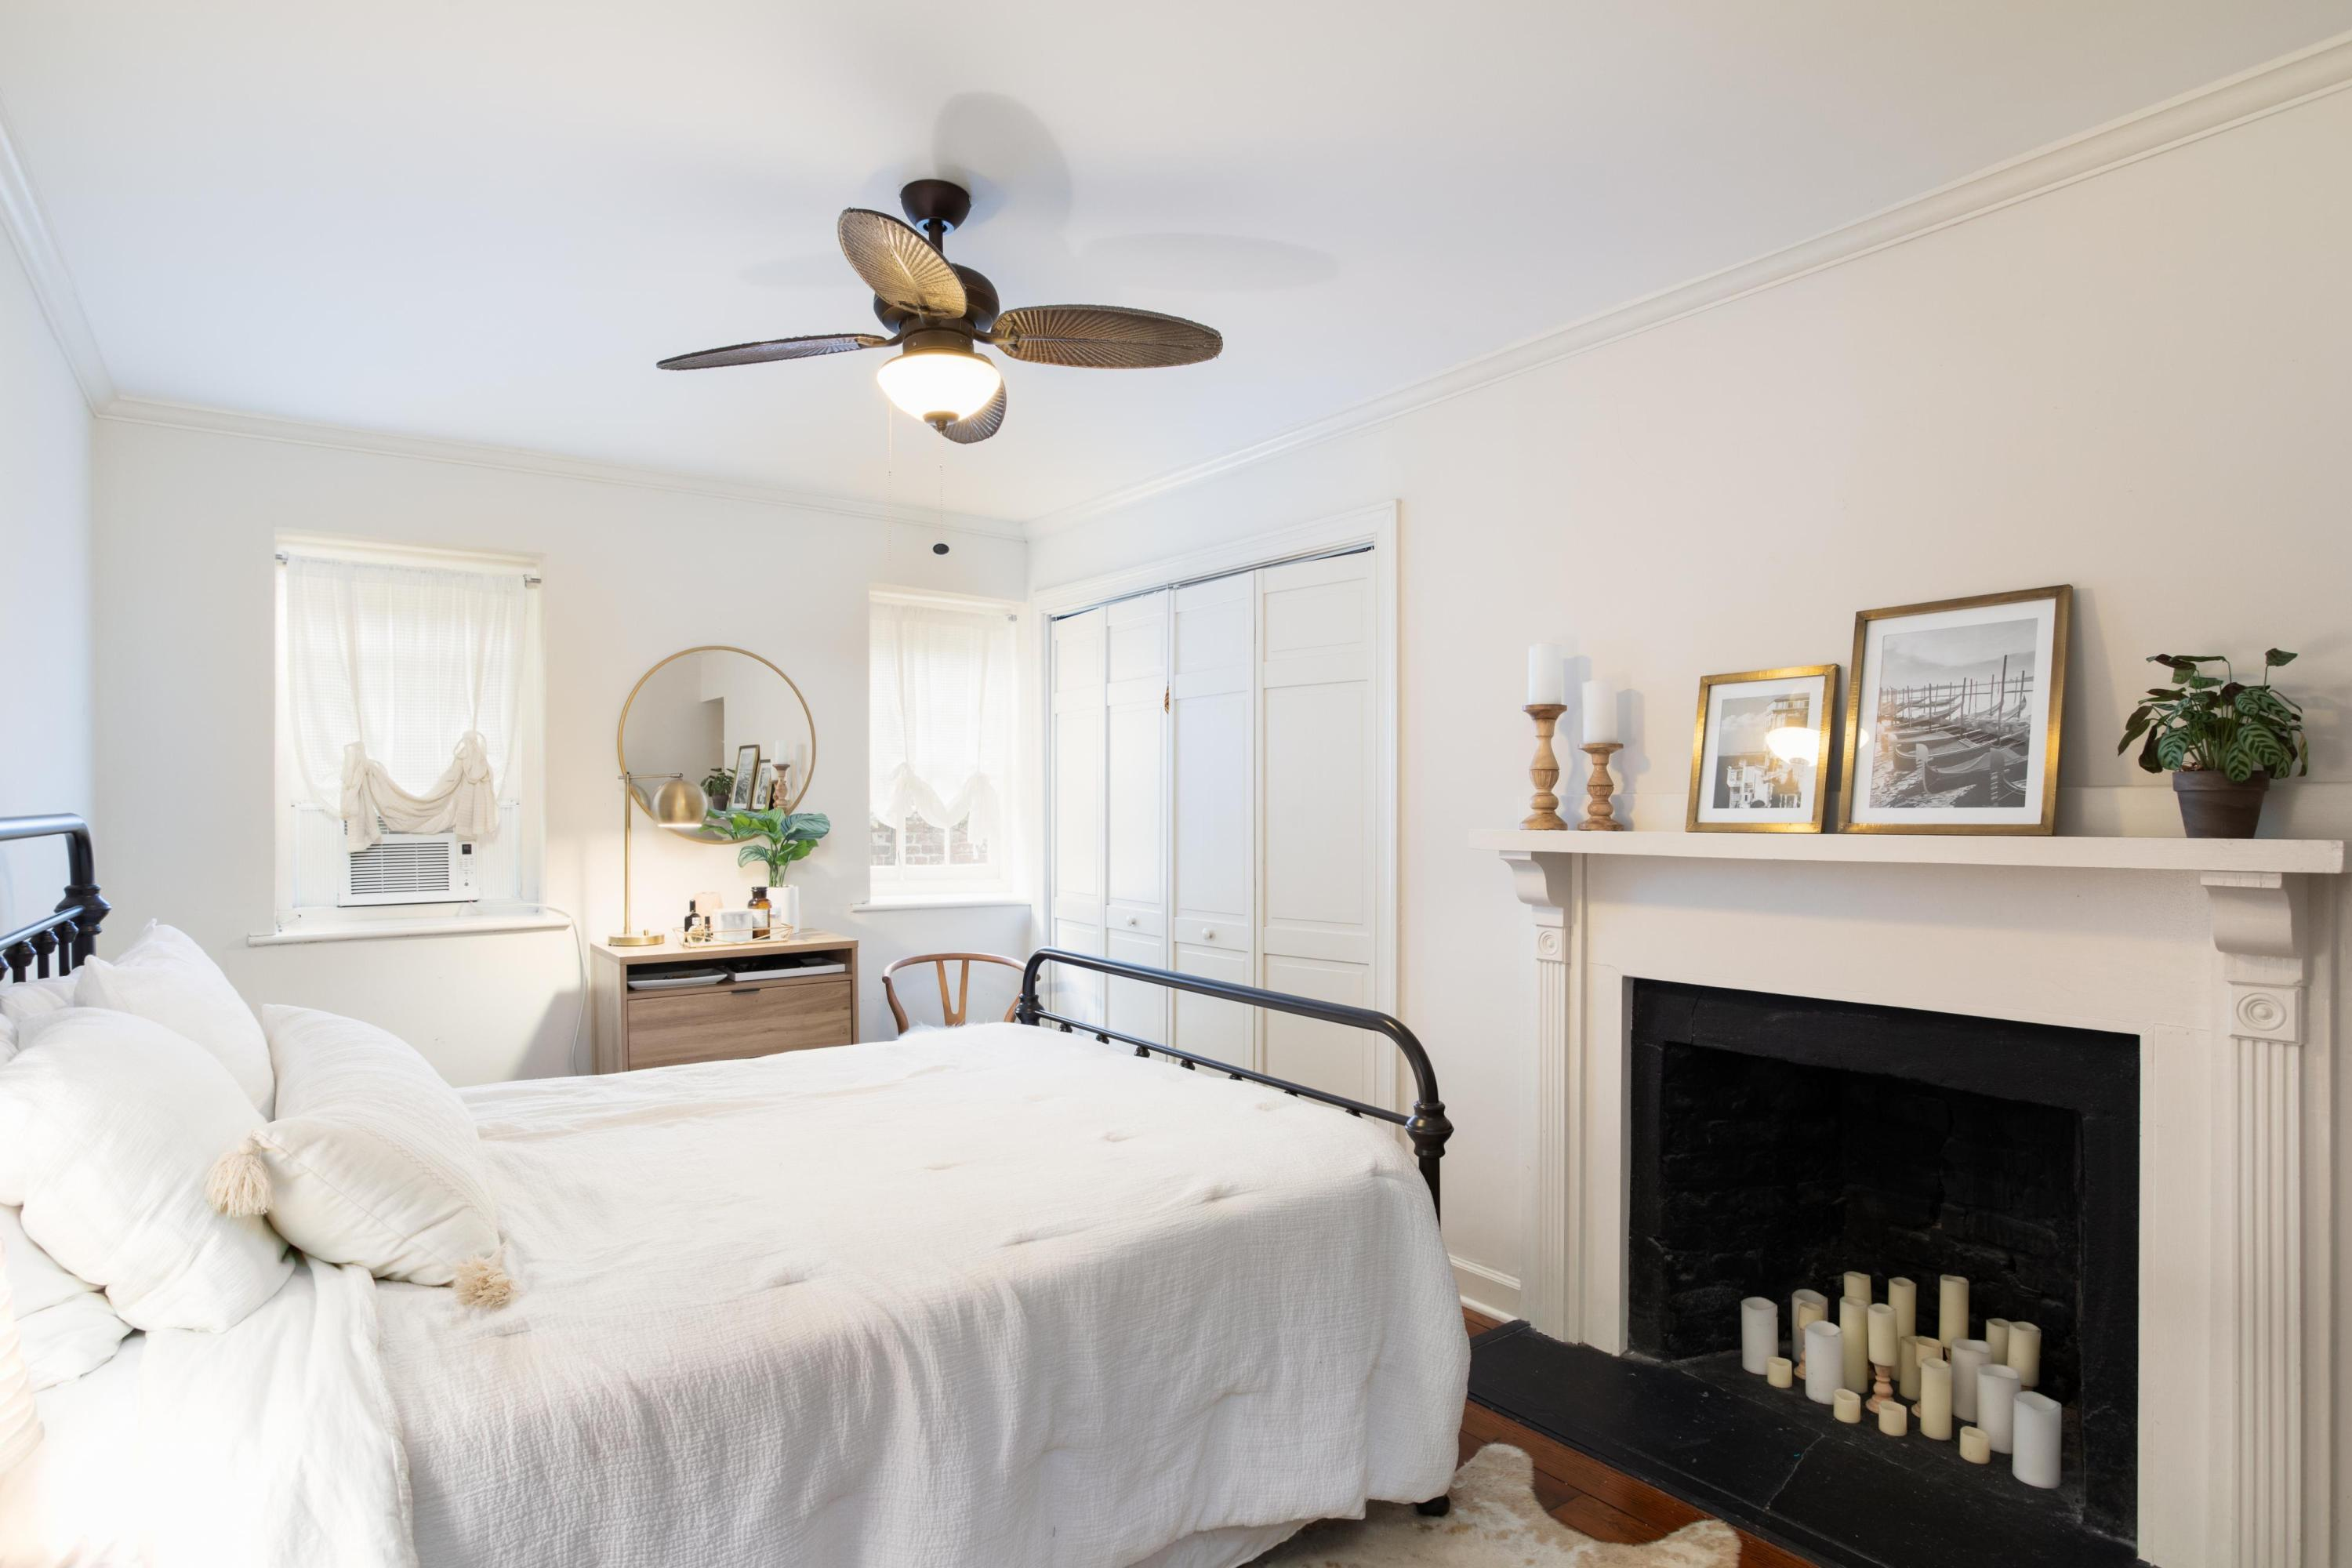 South of Broad Homes For Sale - 53 Bay, Charleston, SC - 25